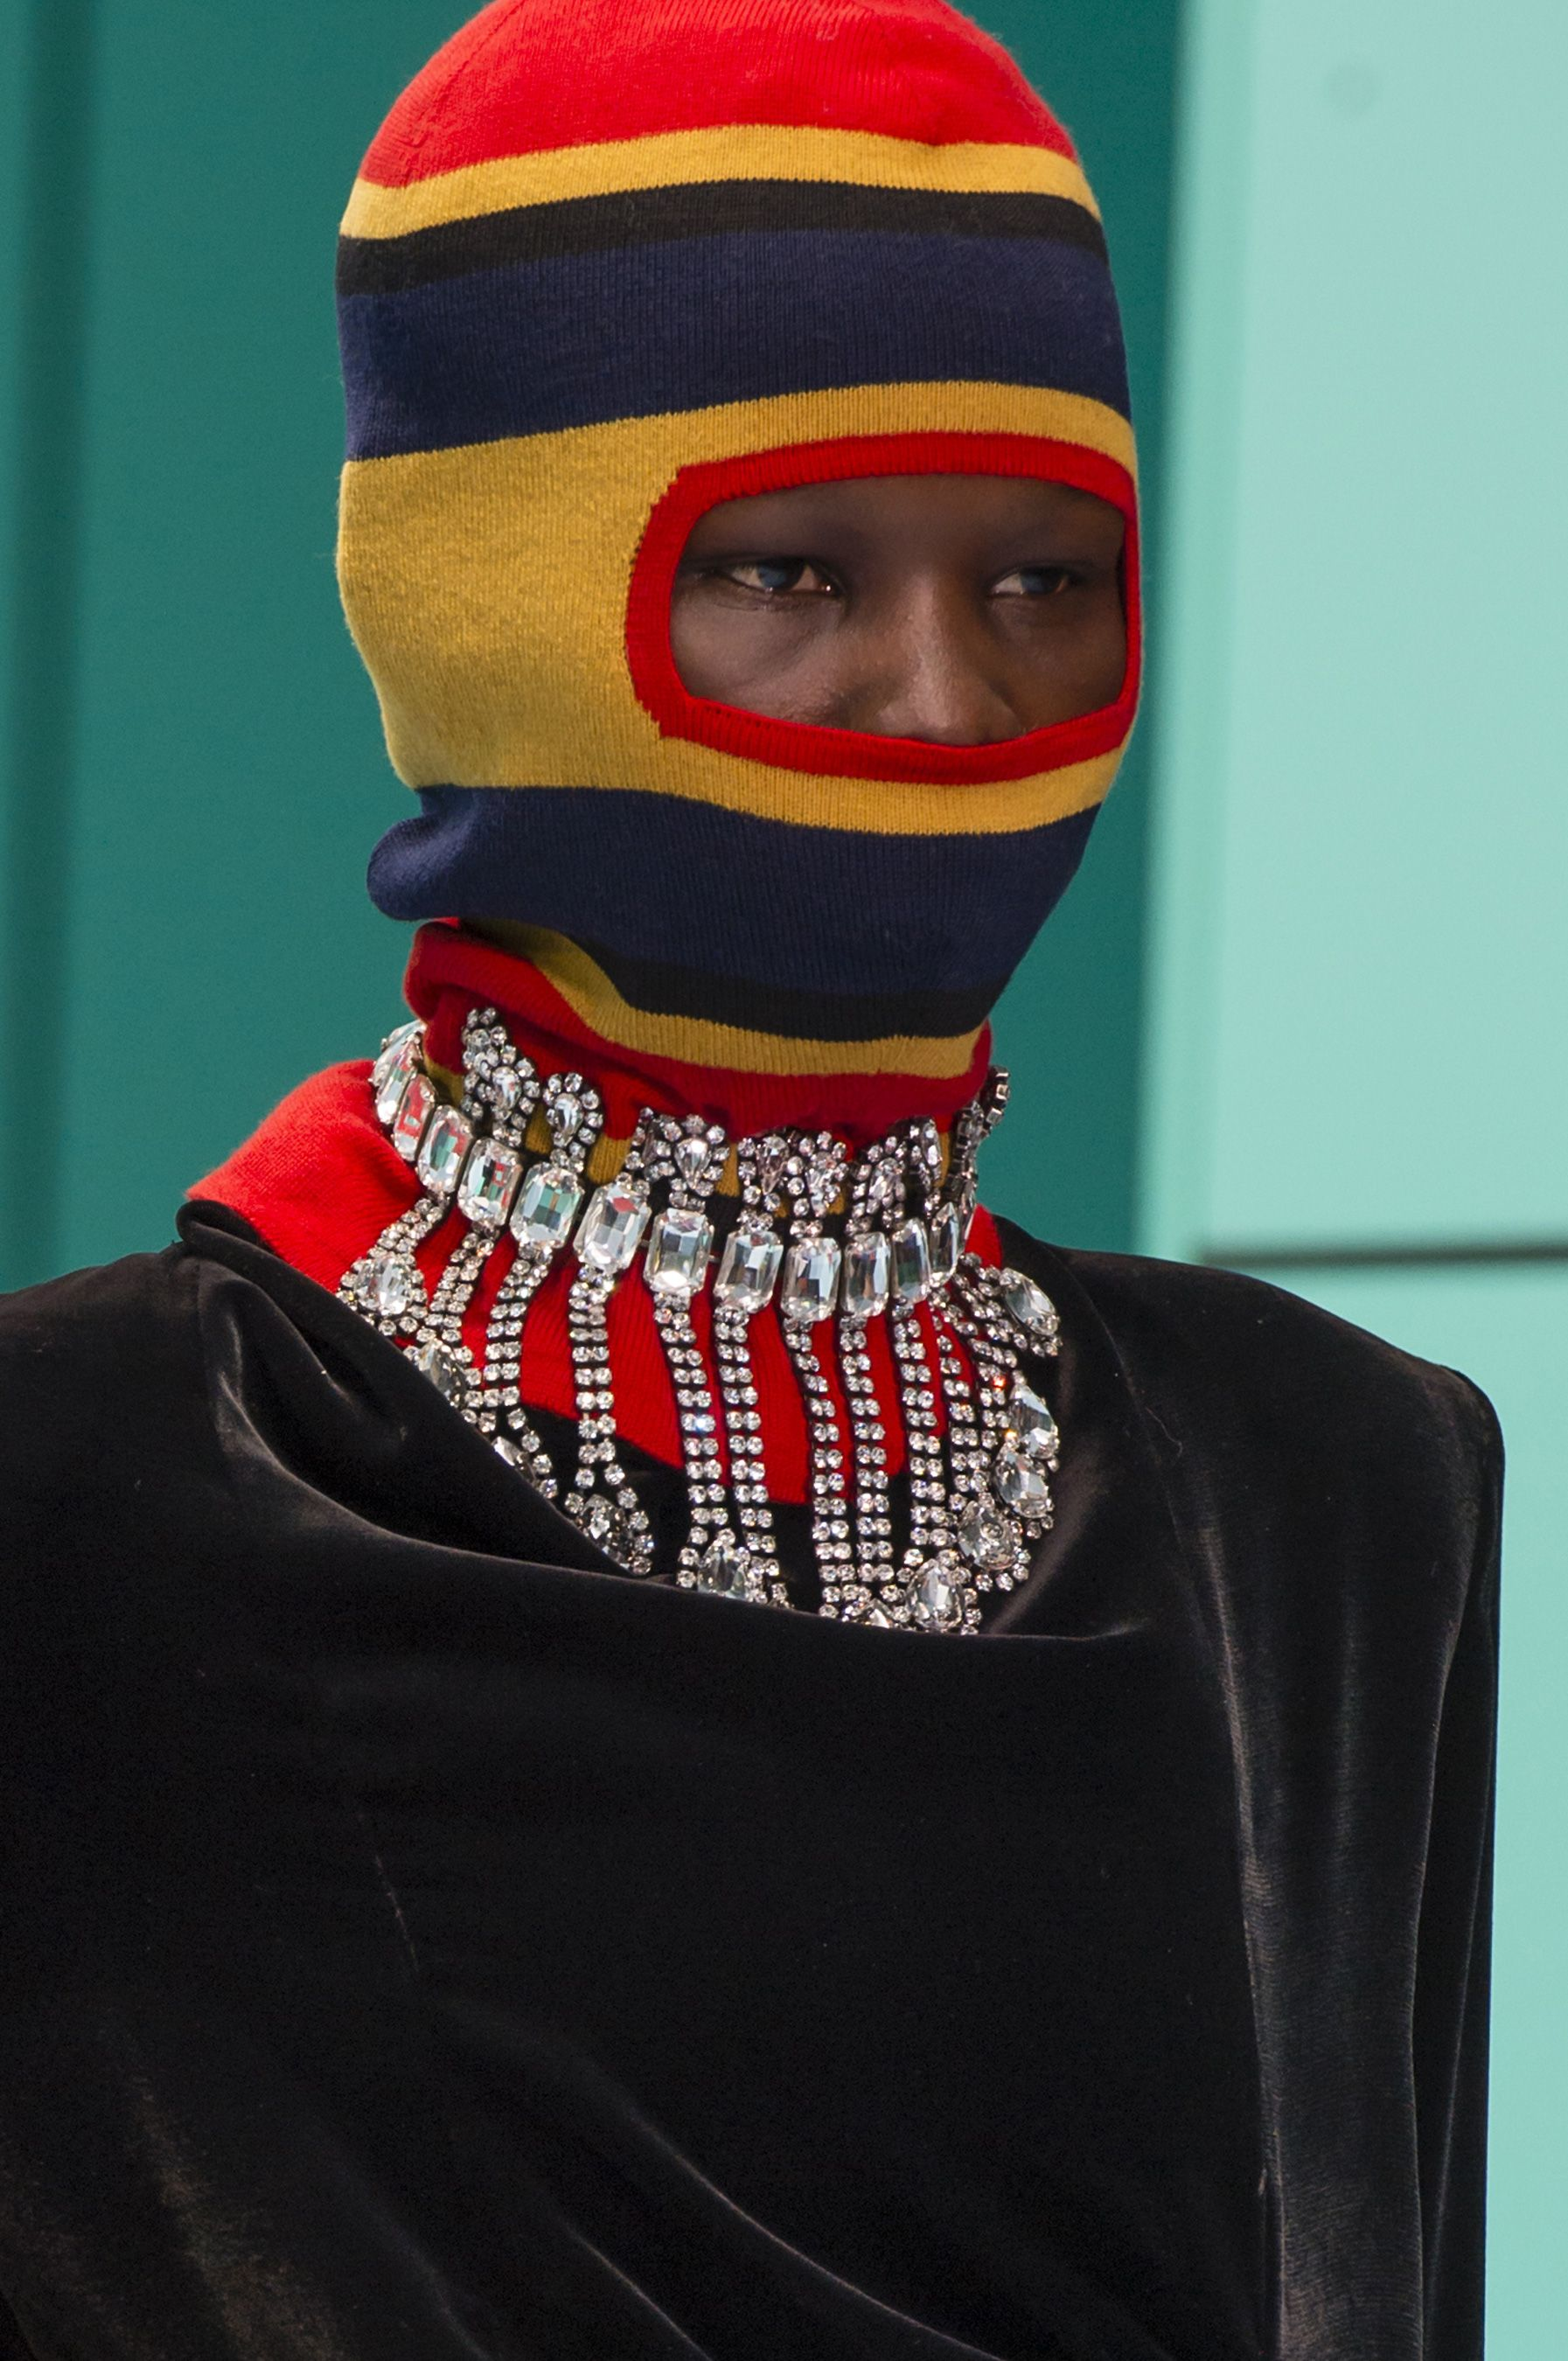 Gucci Fall 2018 Fashion Show Details | unusual accessories ...